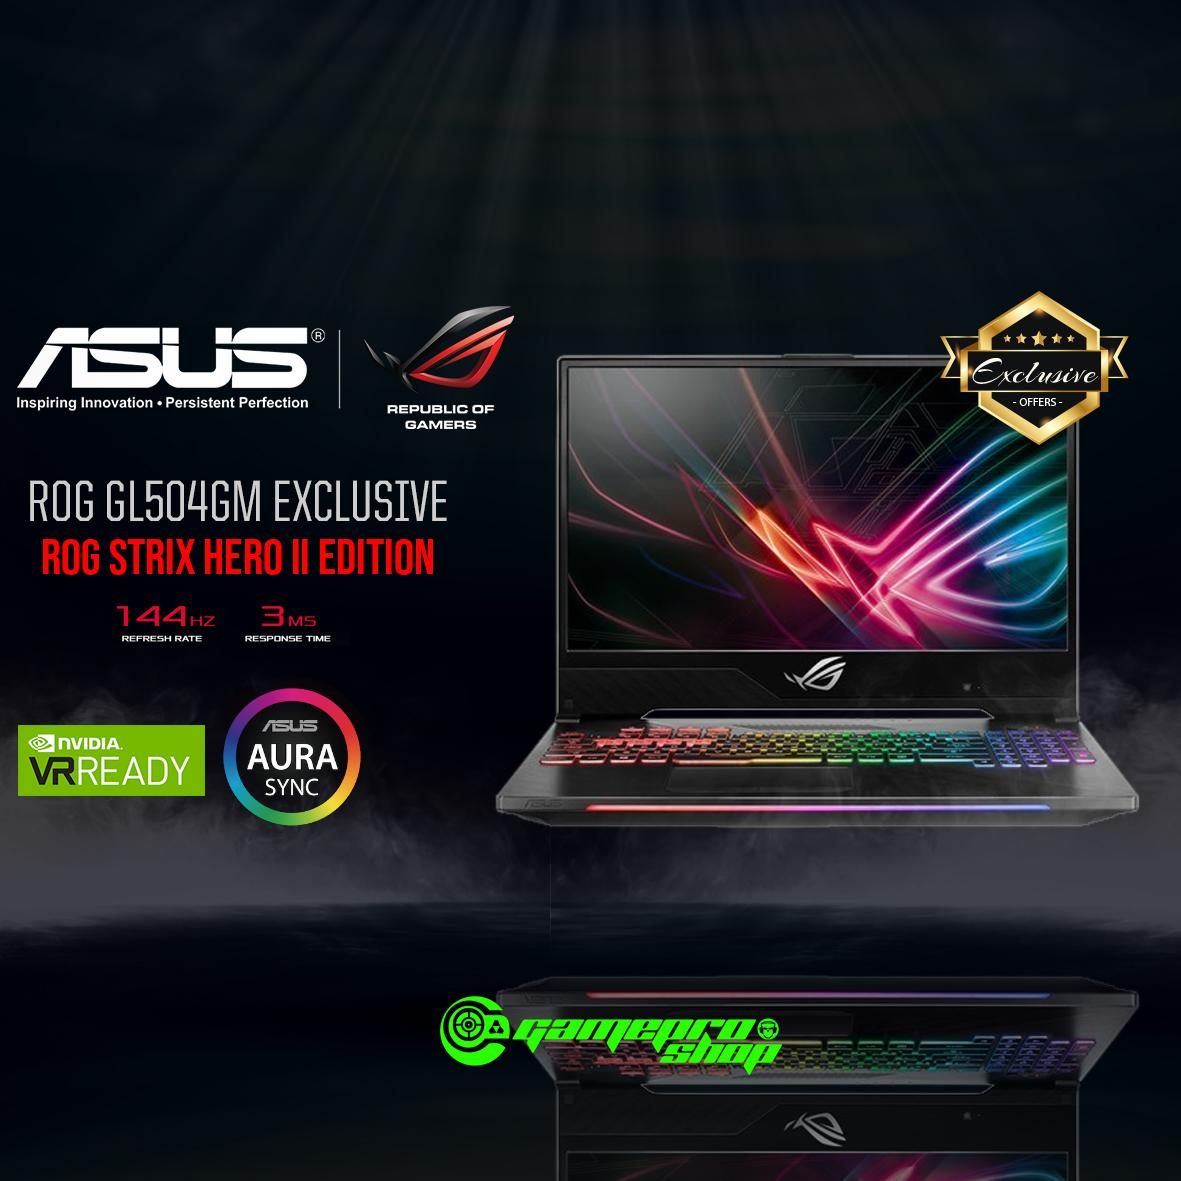 8th Gen ASUS ROG Strix Hero II GL504GM - ES057T EXCLUSIVE ( I7-8750H / 8GB / 128GB SSD + 1TB HDD / GTX 1060 ) 15.6 WITH 144Hz GAMING LAPTOP *11.11 PROMO*